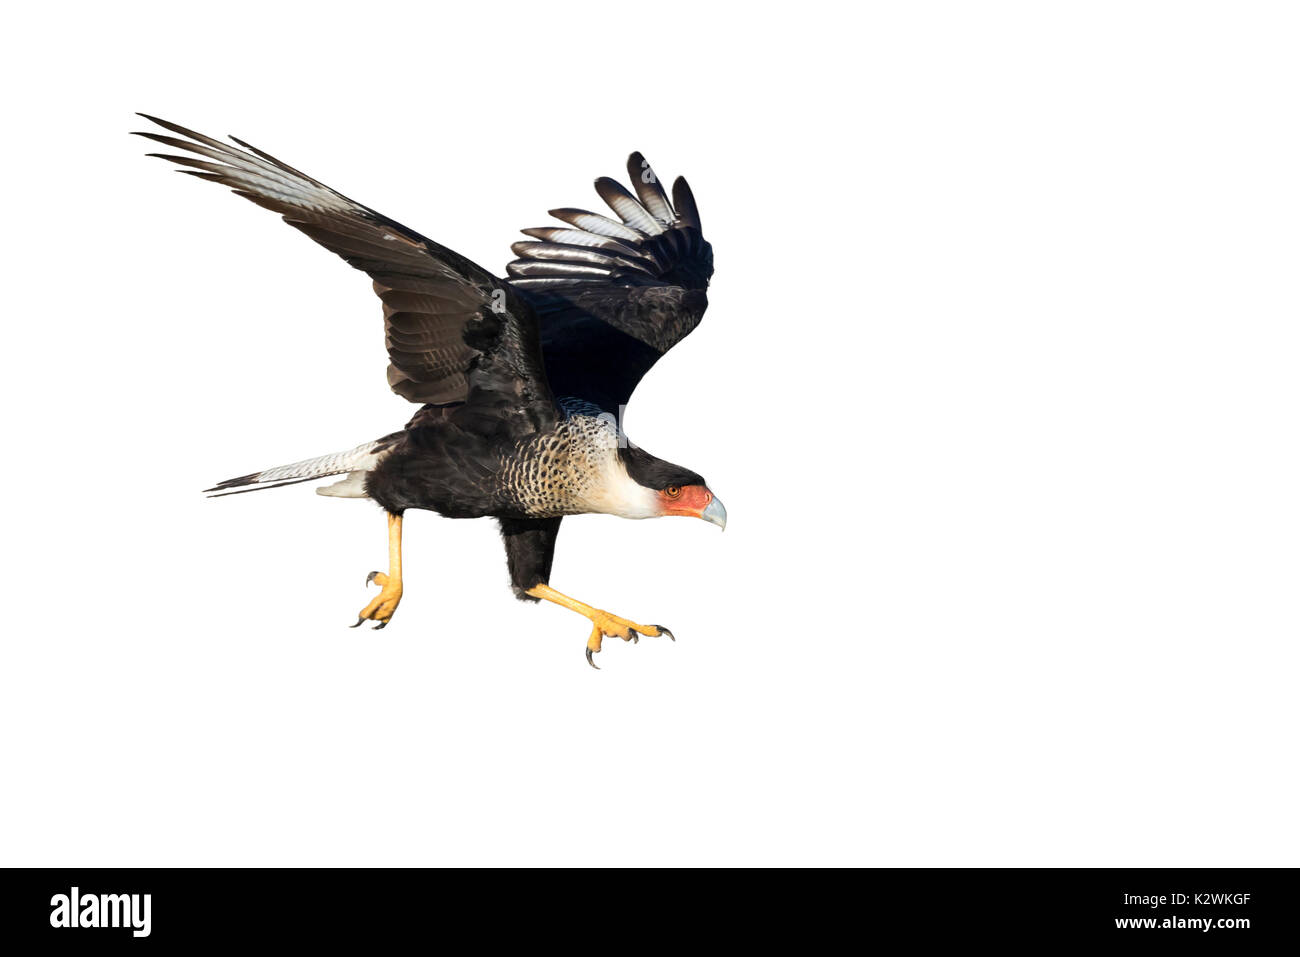 Northern crested caracara (Caracara cheriway) taking off, isolated on white background. - Stock Image